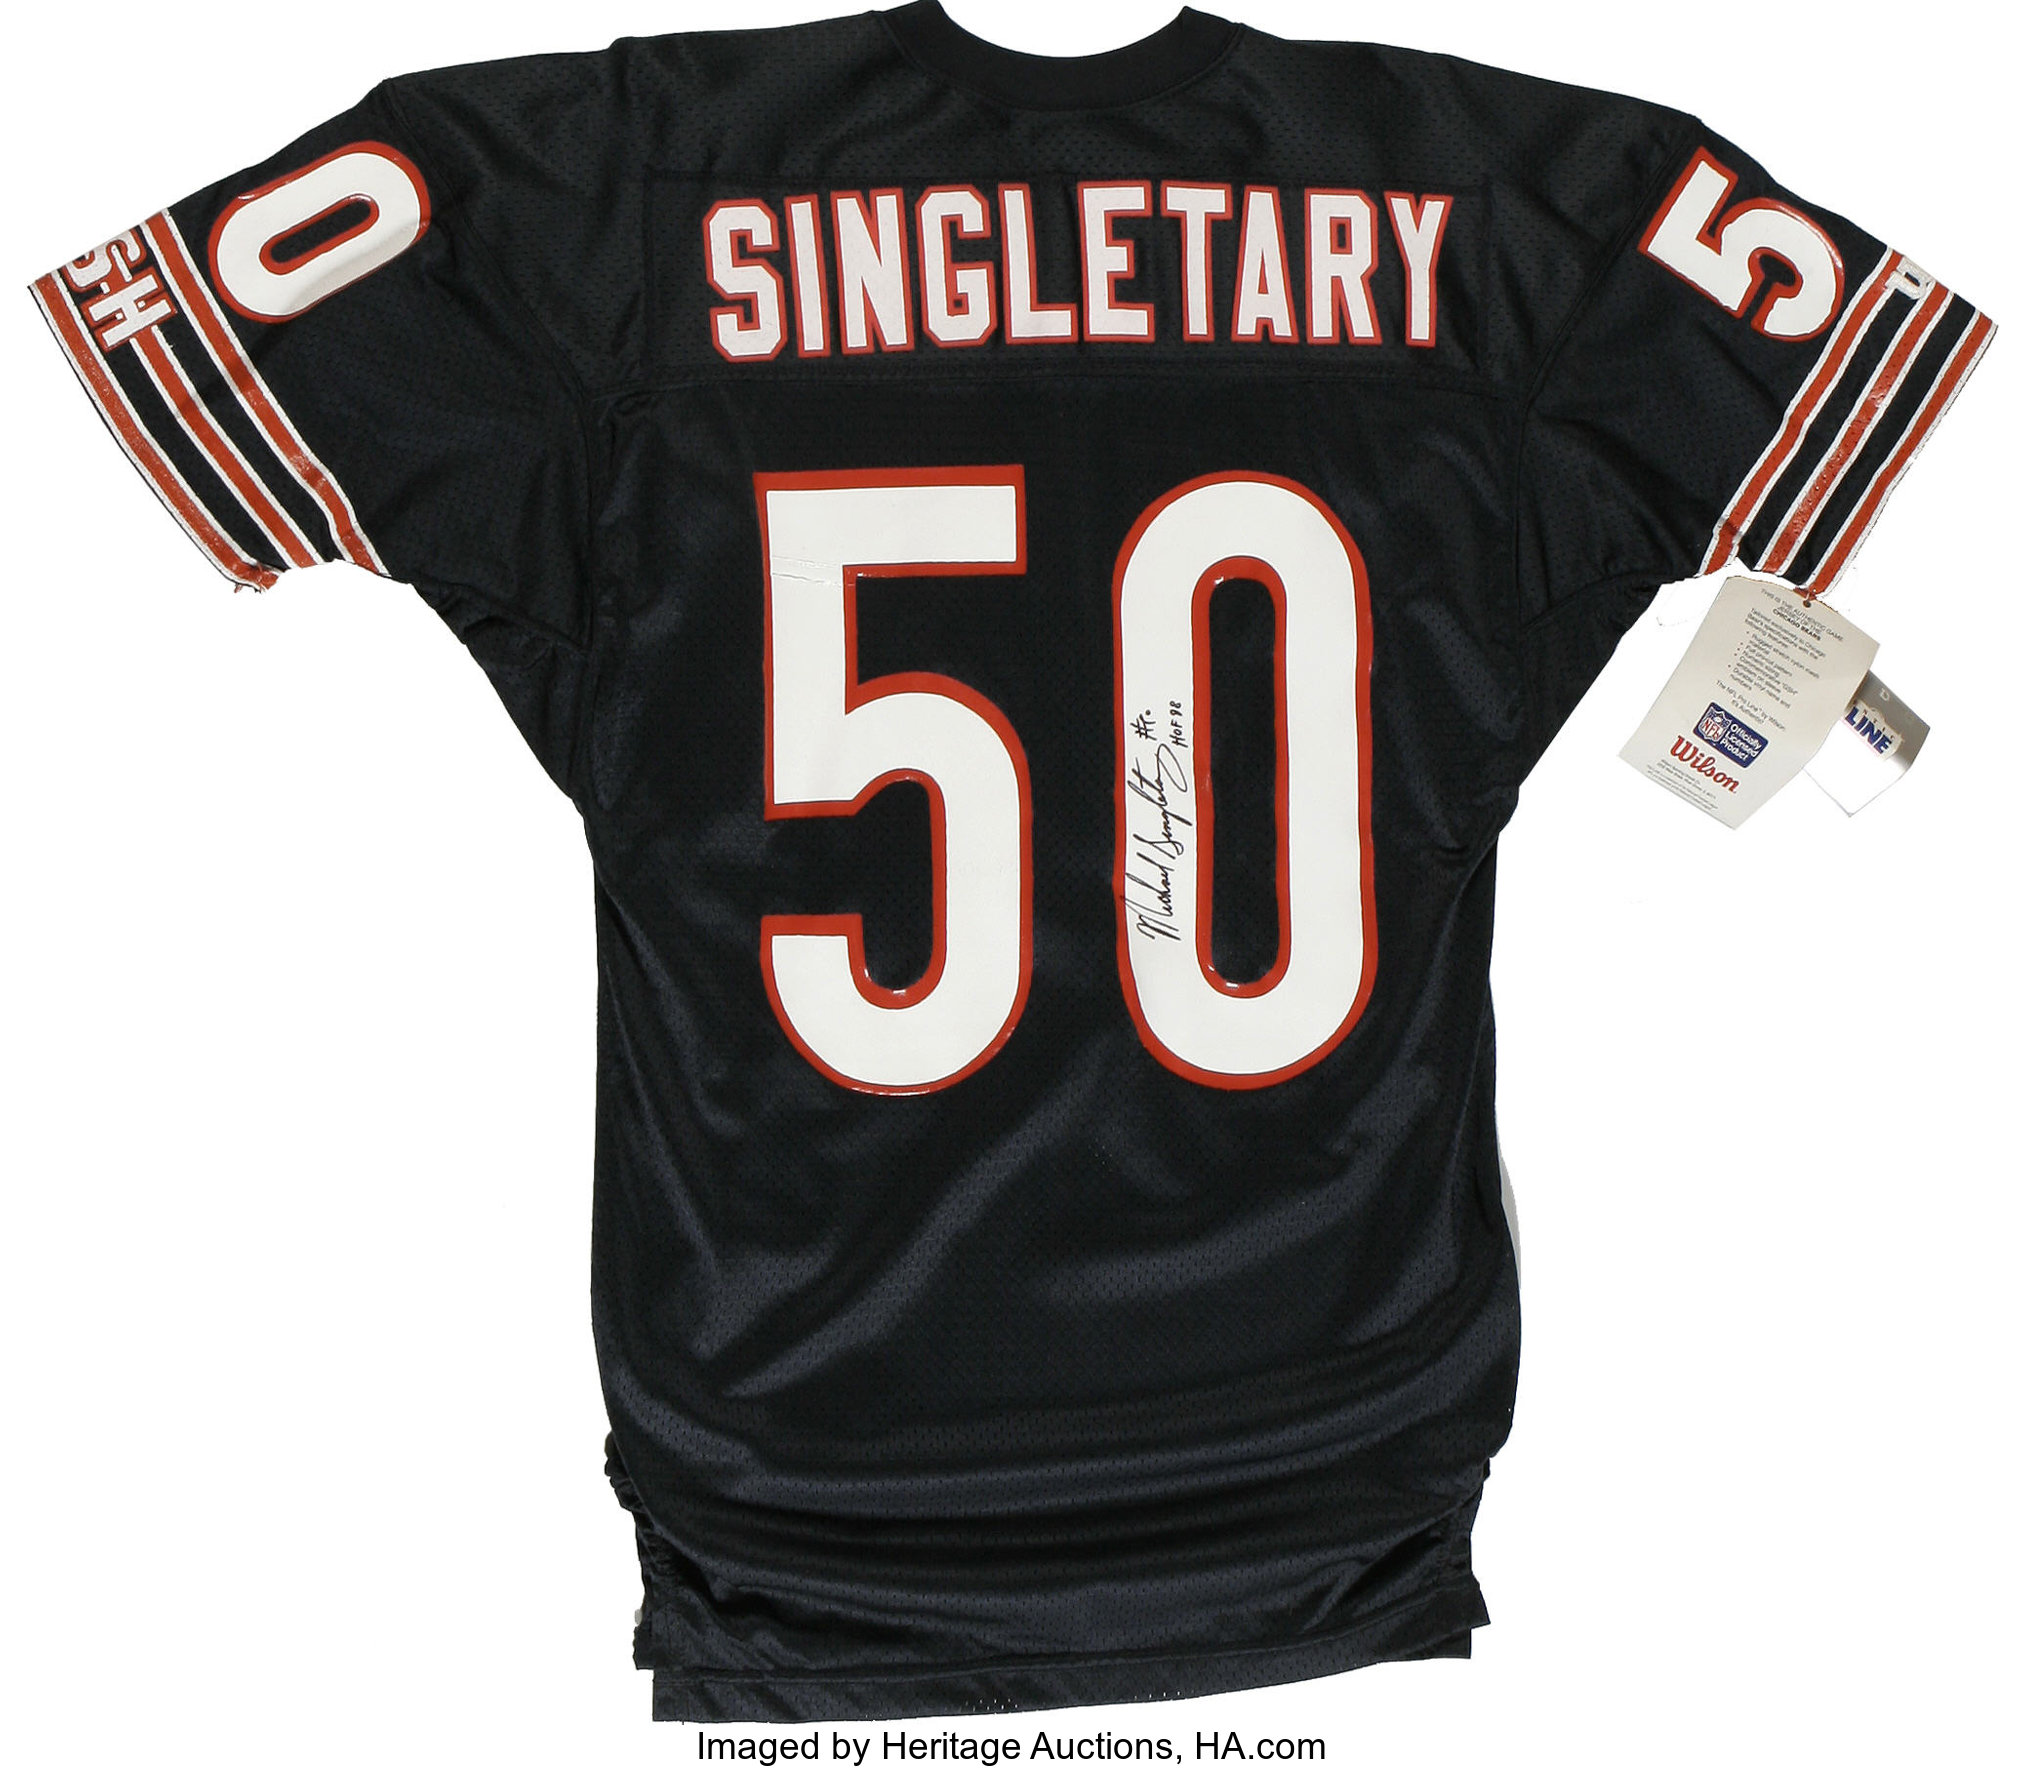 Mike Singletary Signed Jersey. The legendary linebacker for the ...